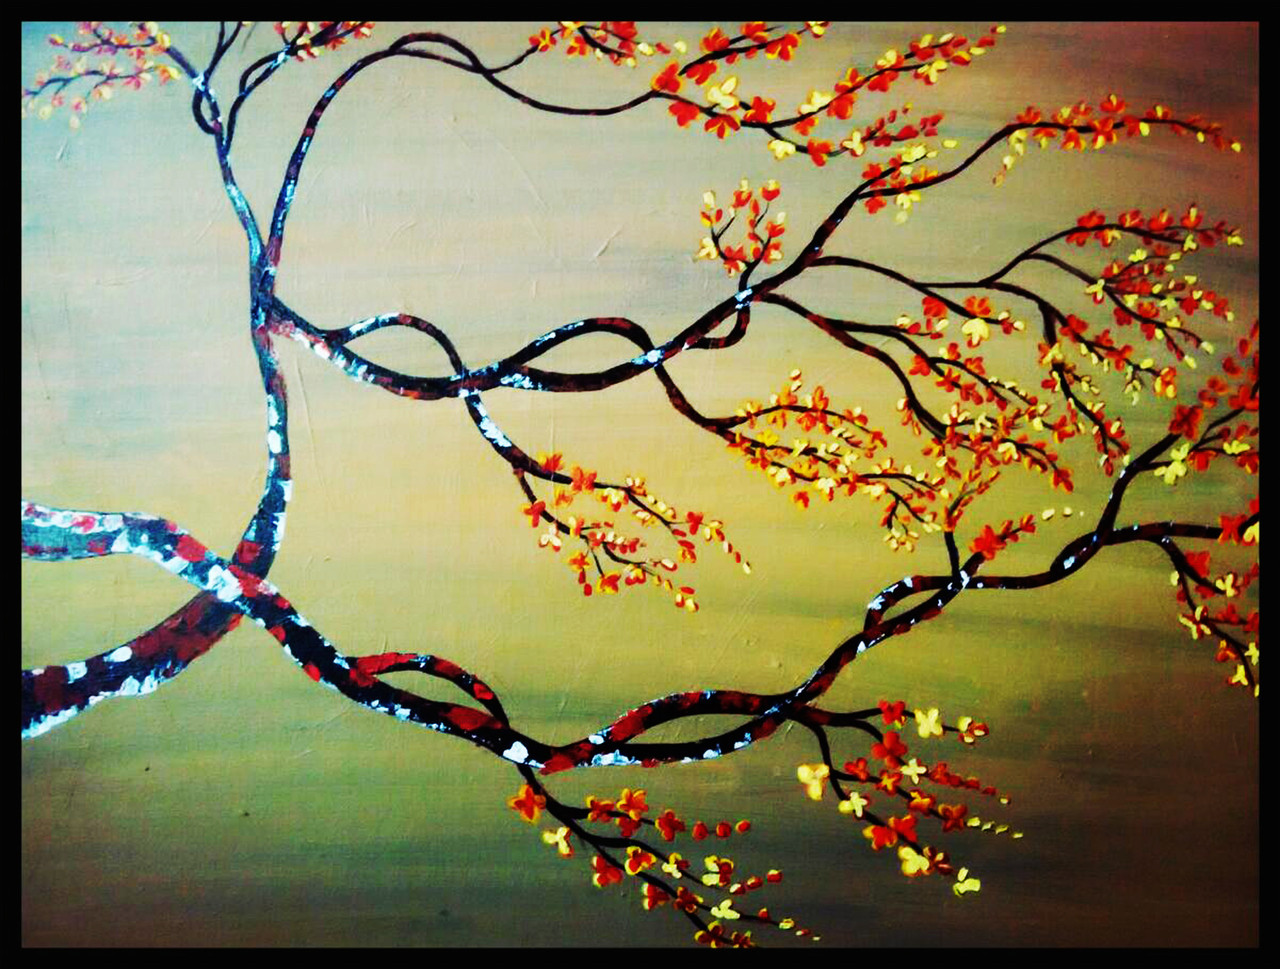 Buy Magic tree with red leaves and yellow flowers Handmade Painting ...